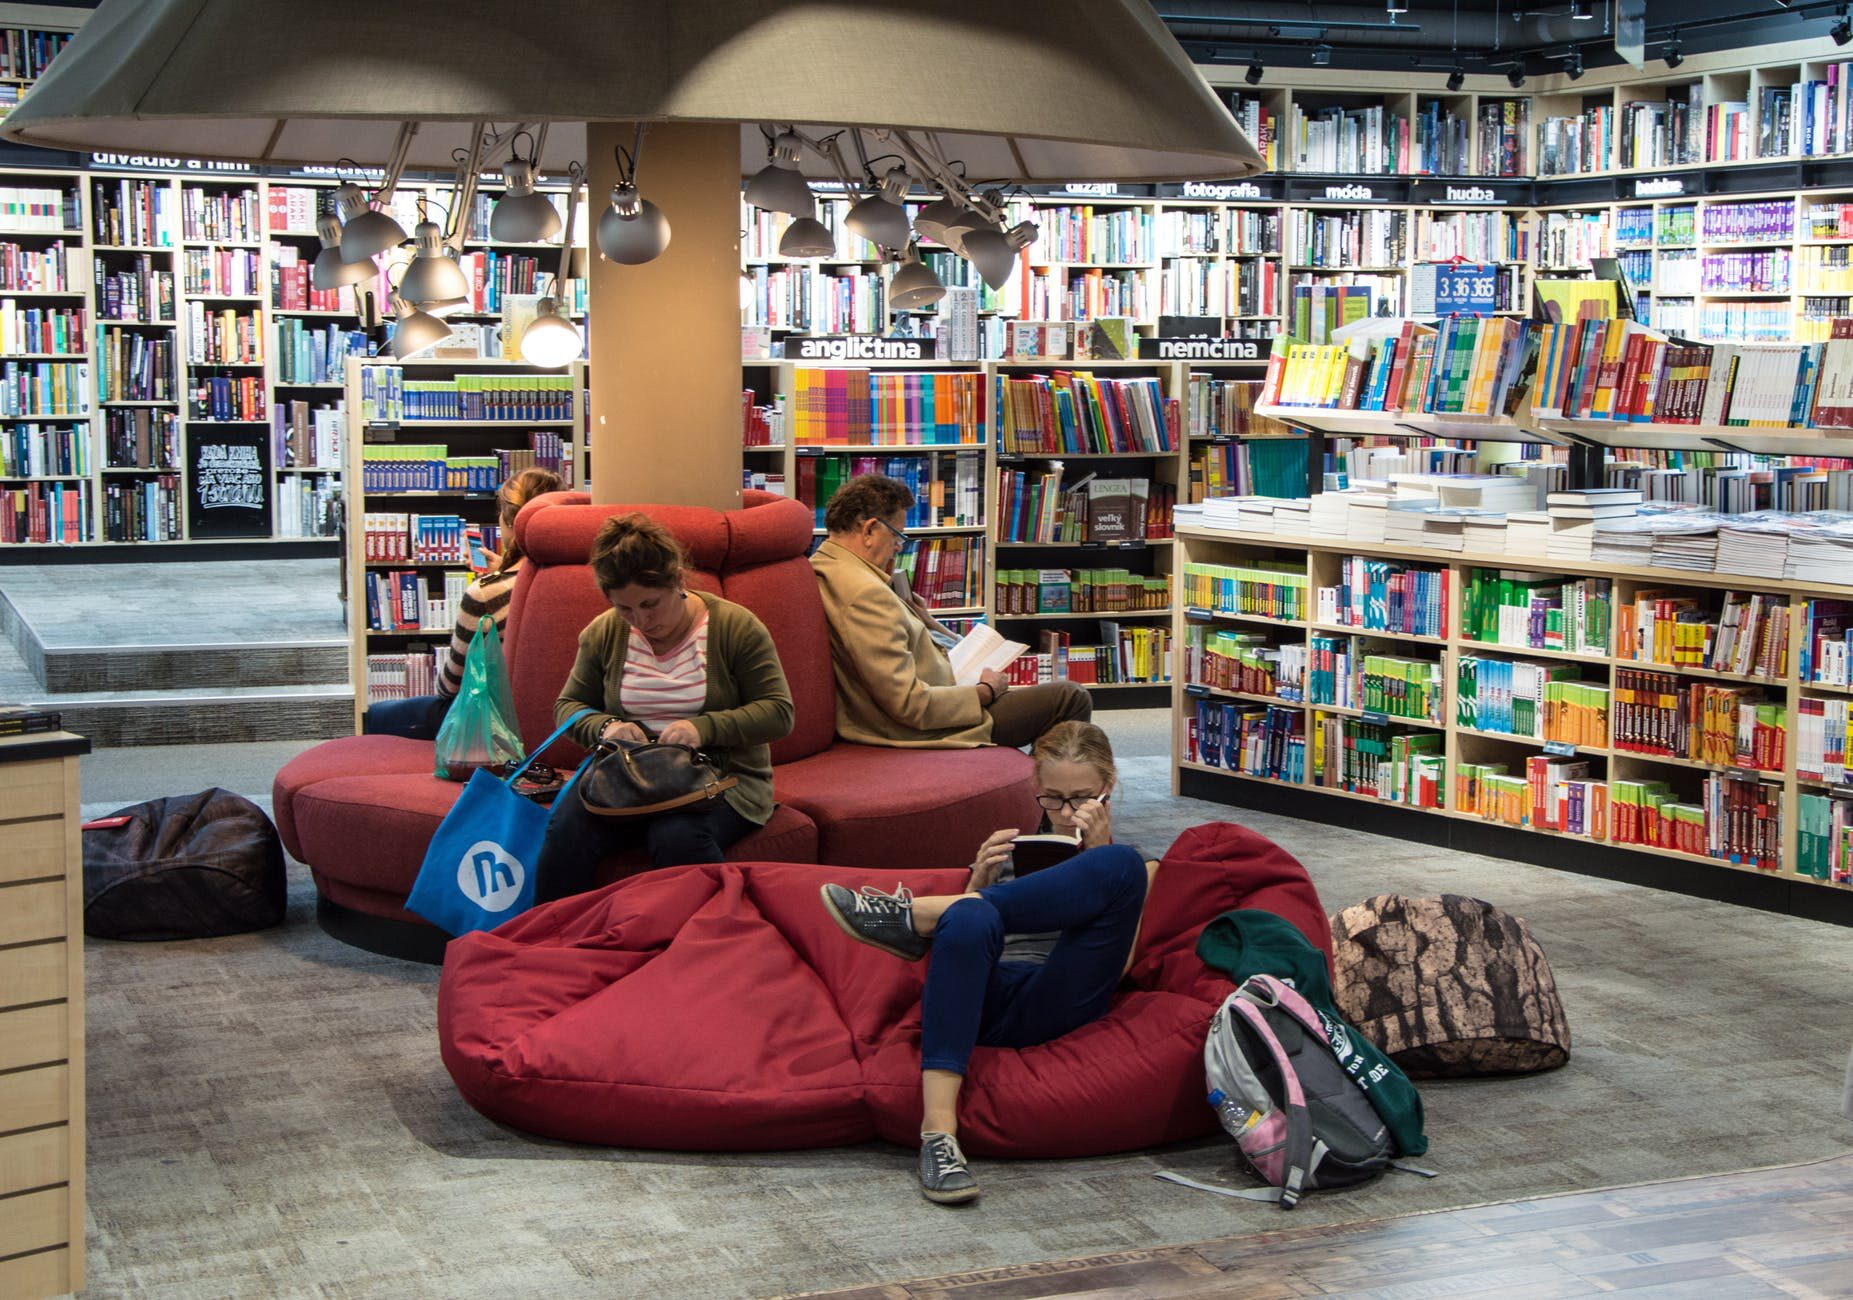 myLIBRO Library Contactless Service Users